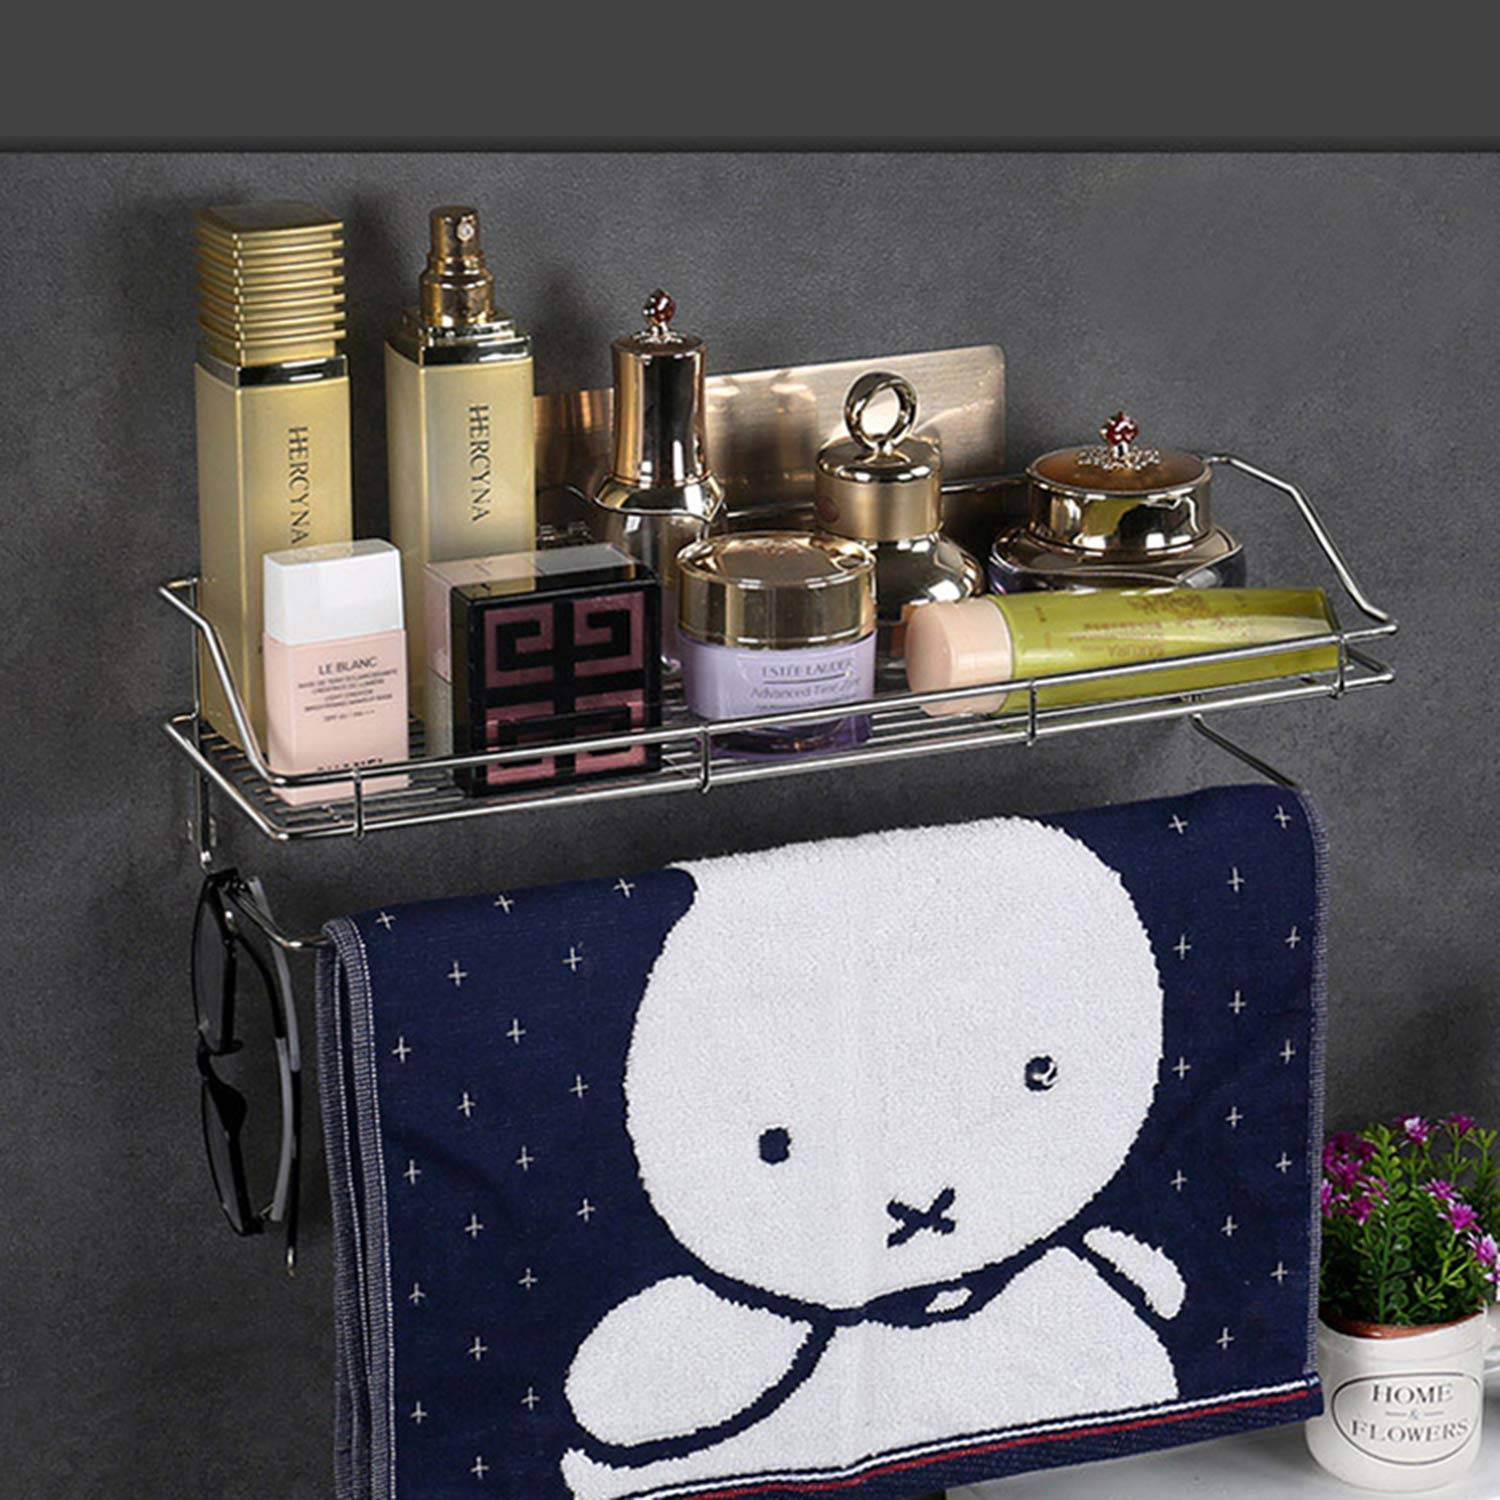 AND007060. 2 Tier Kitchen Bathroom Shelf and Towel Holder